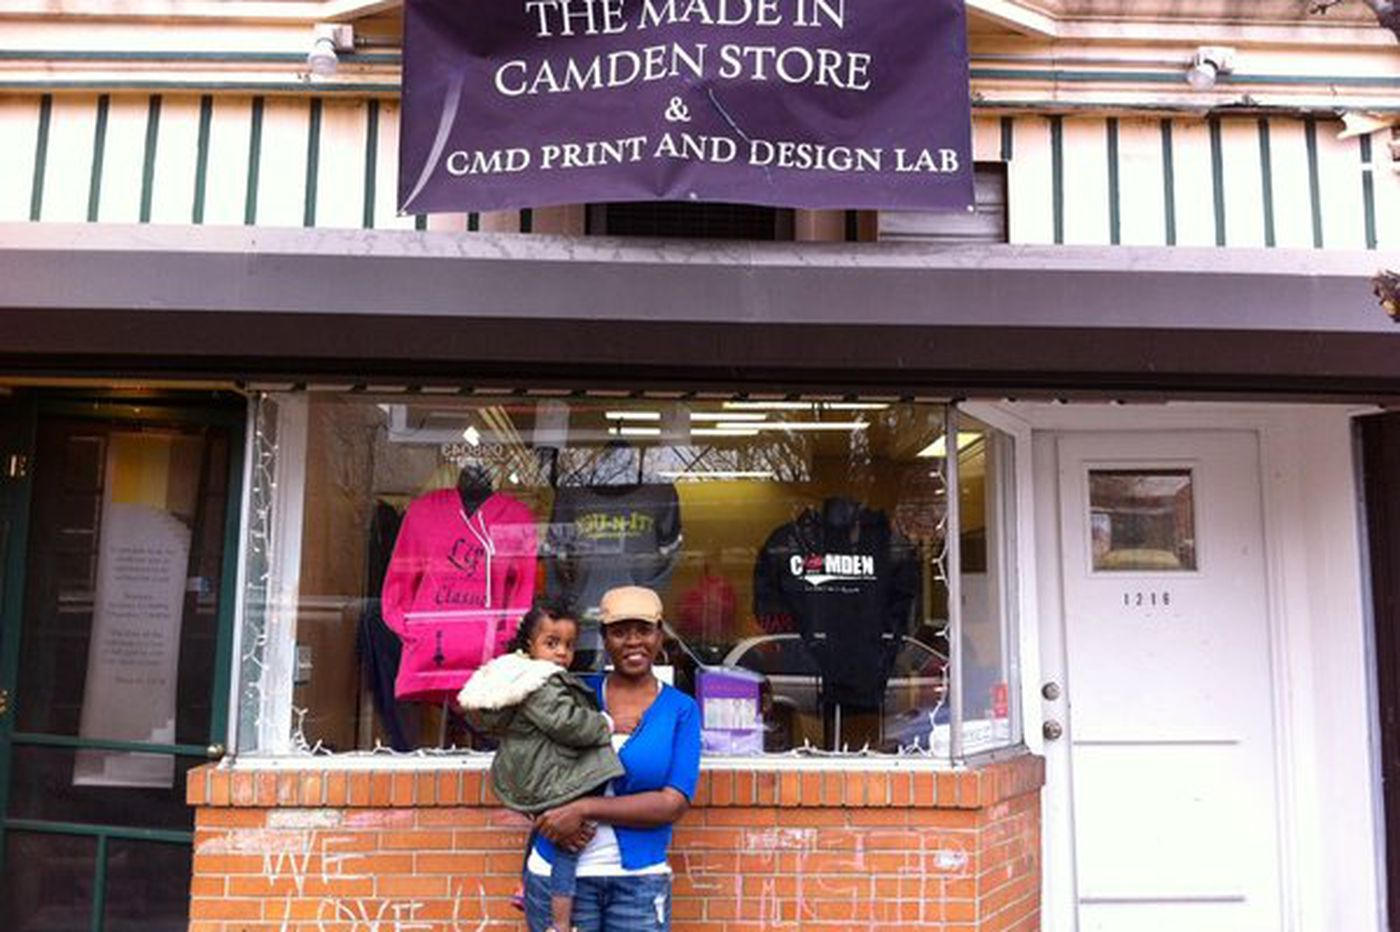 Store's stock is made in Camden